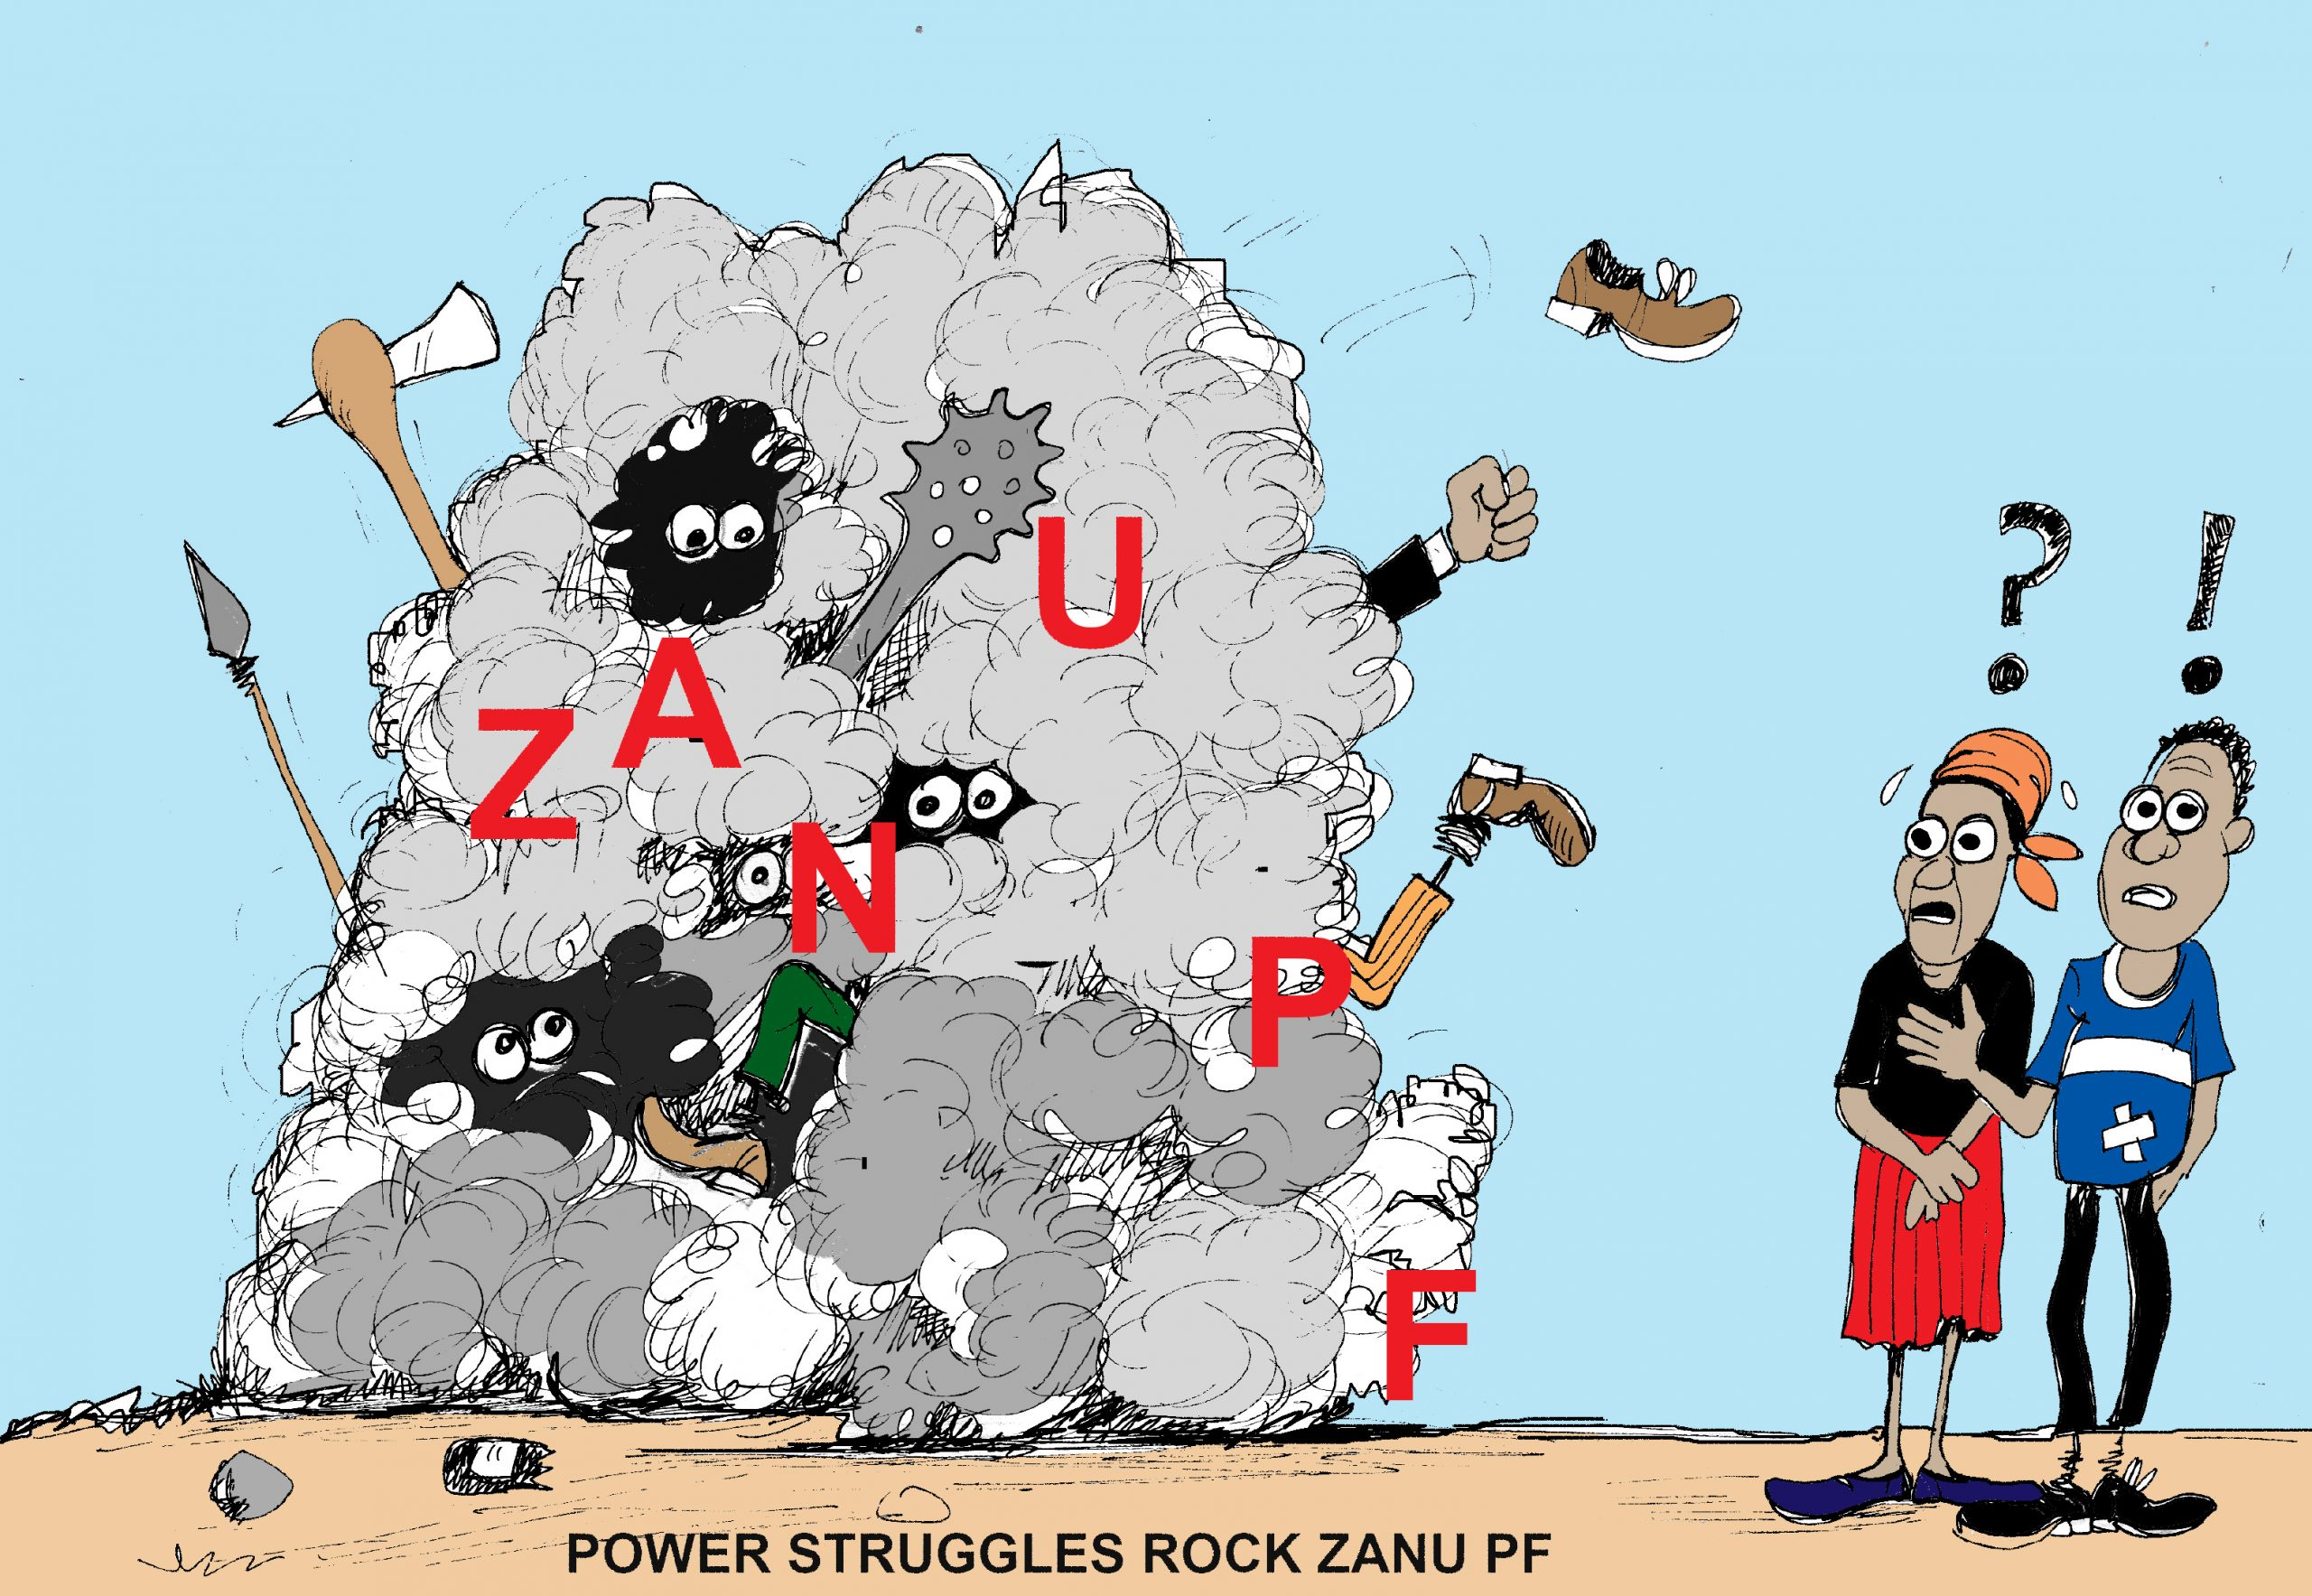 Zanu PF power struggles